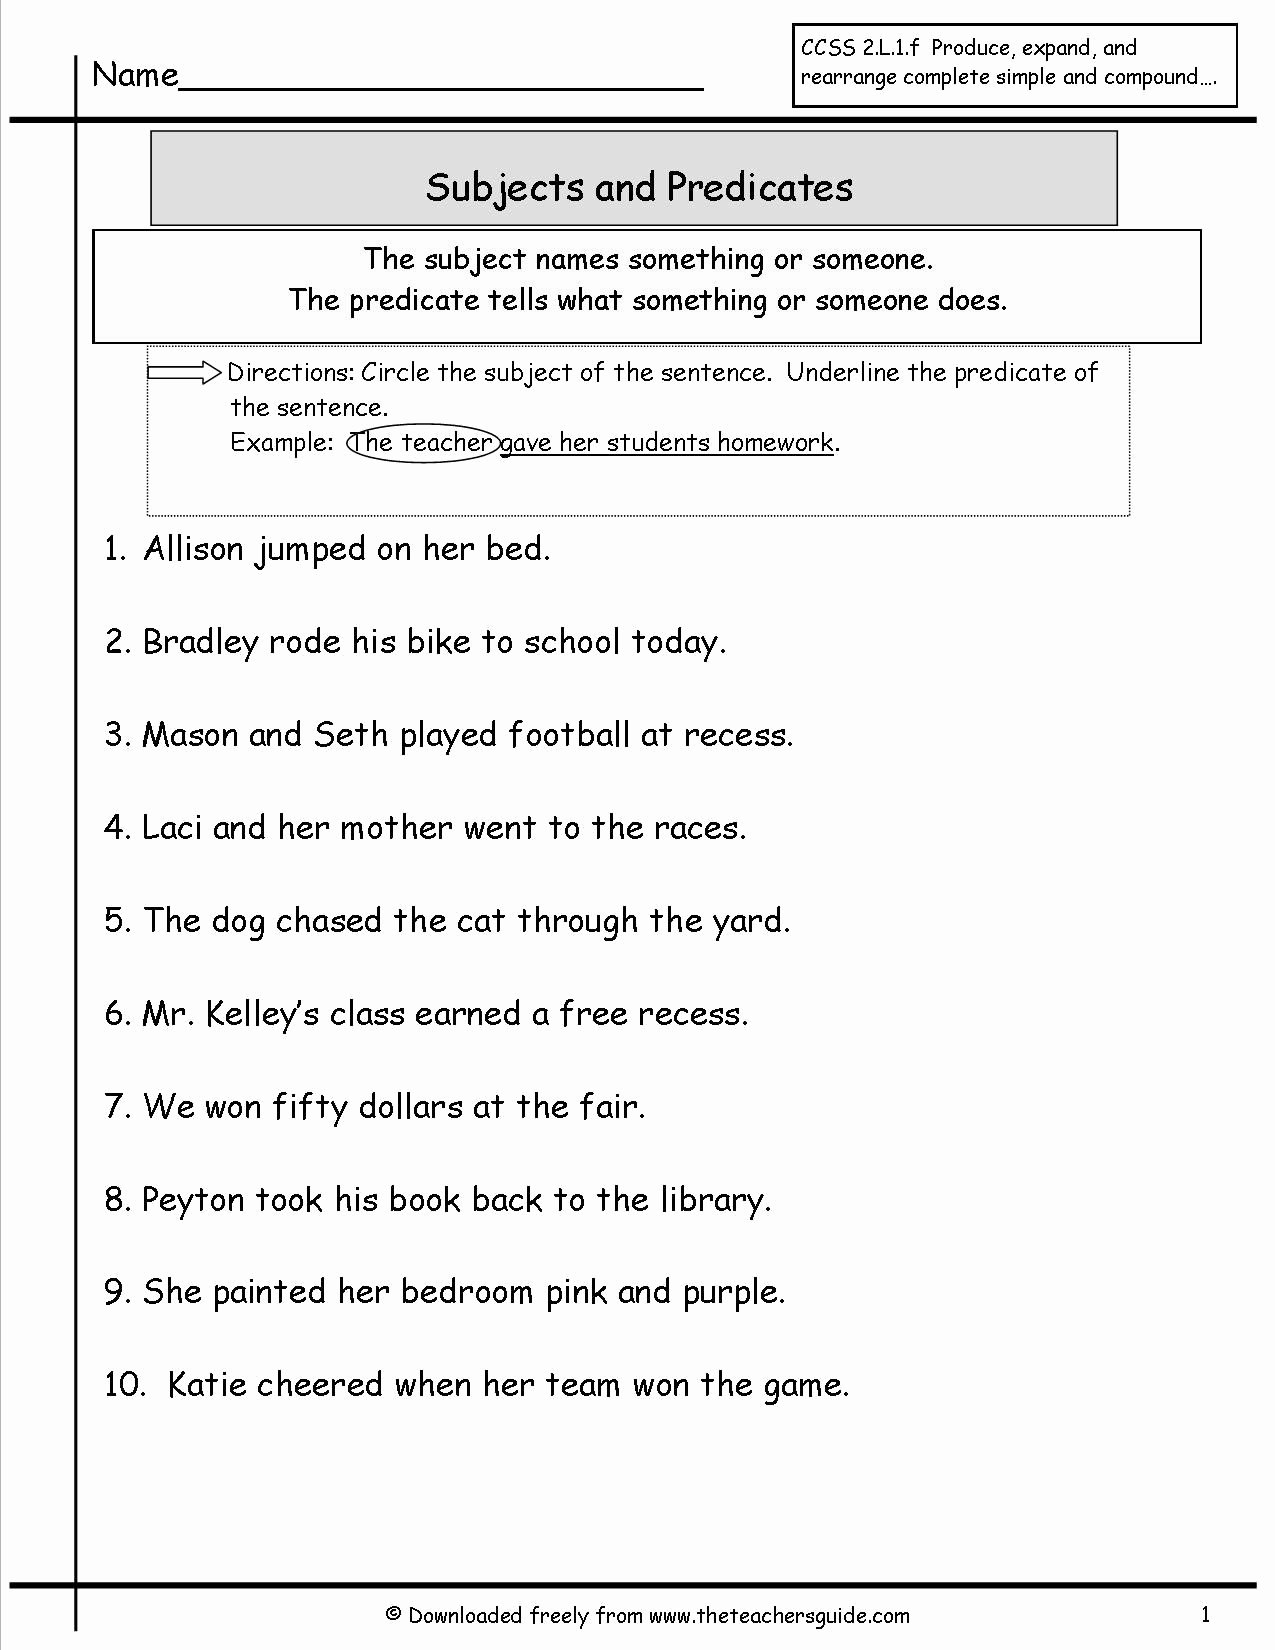 Free Subject and Predicate Worksheets Lovely Subject and Predicate Worksheet More